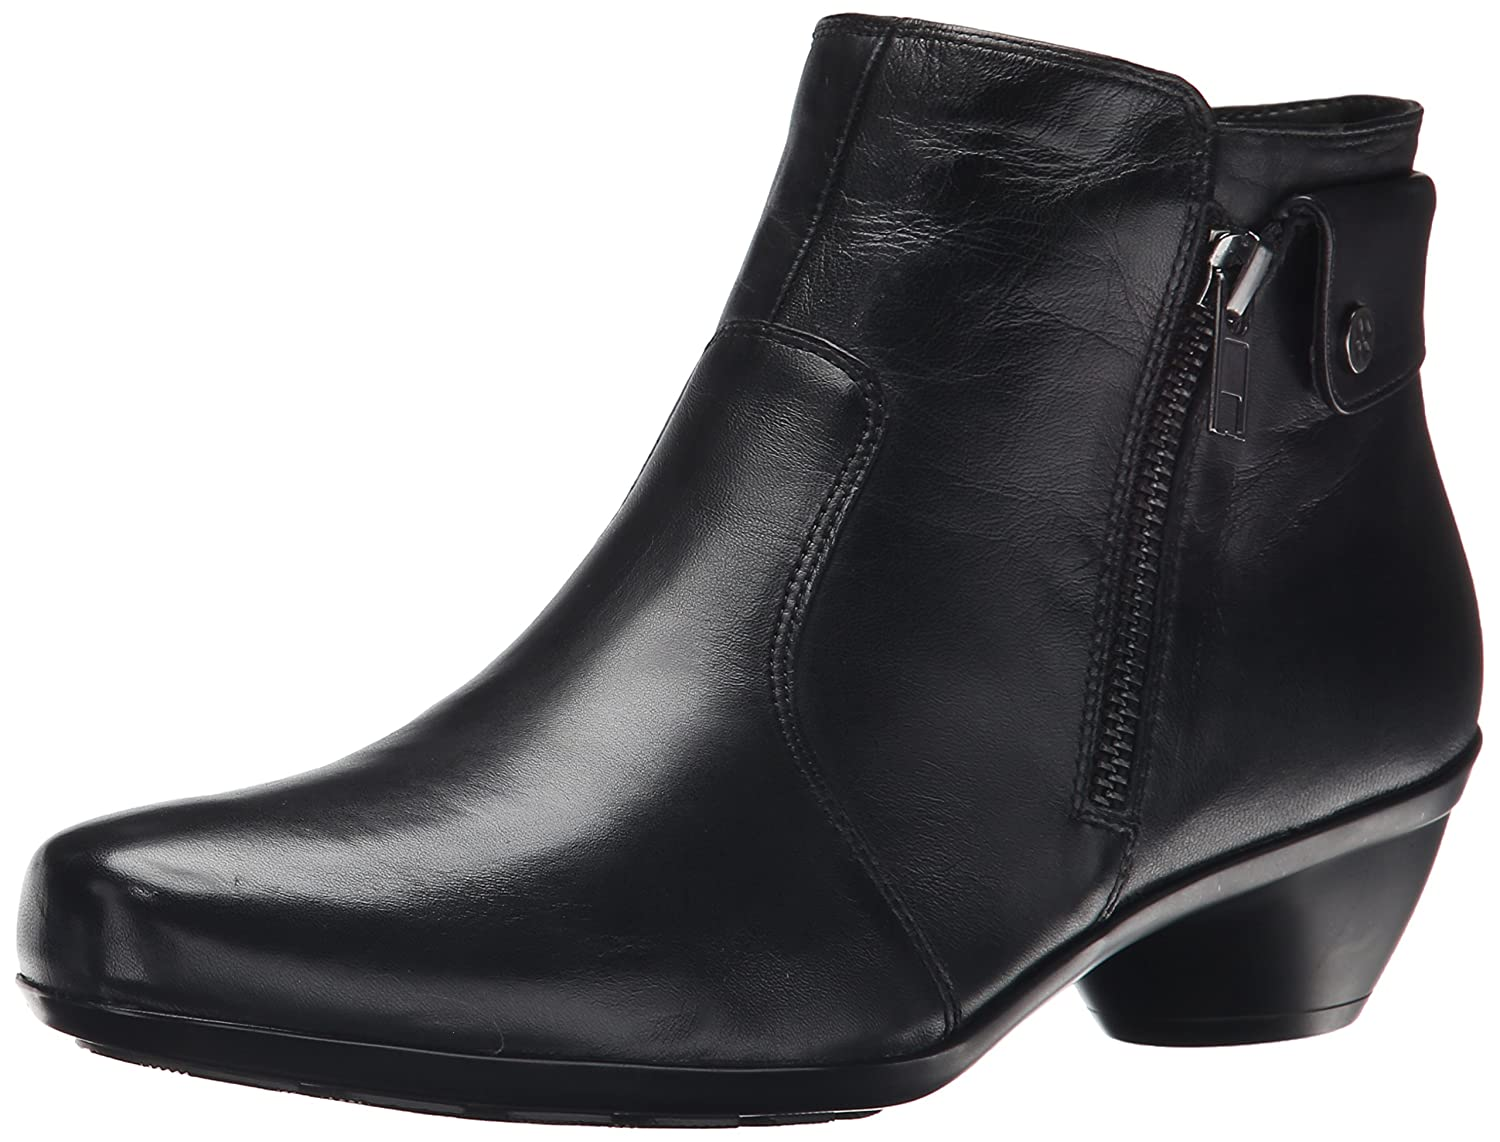 Naturalizer Women's Haley Boot B00UVA0T1E 8.5 B(M) US|Black